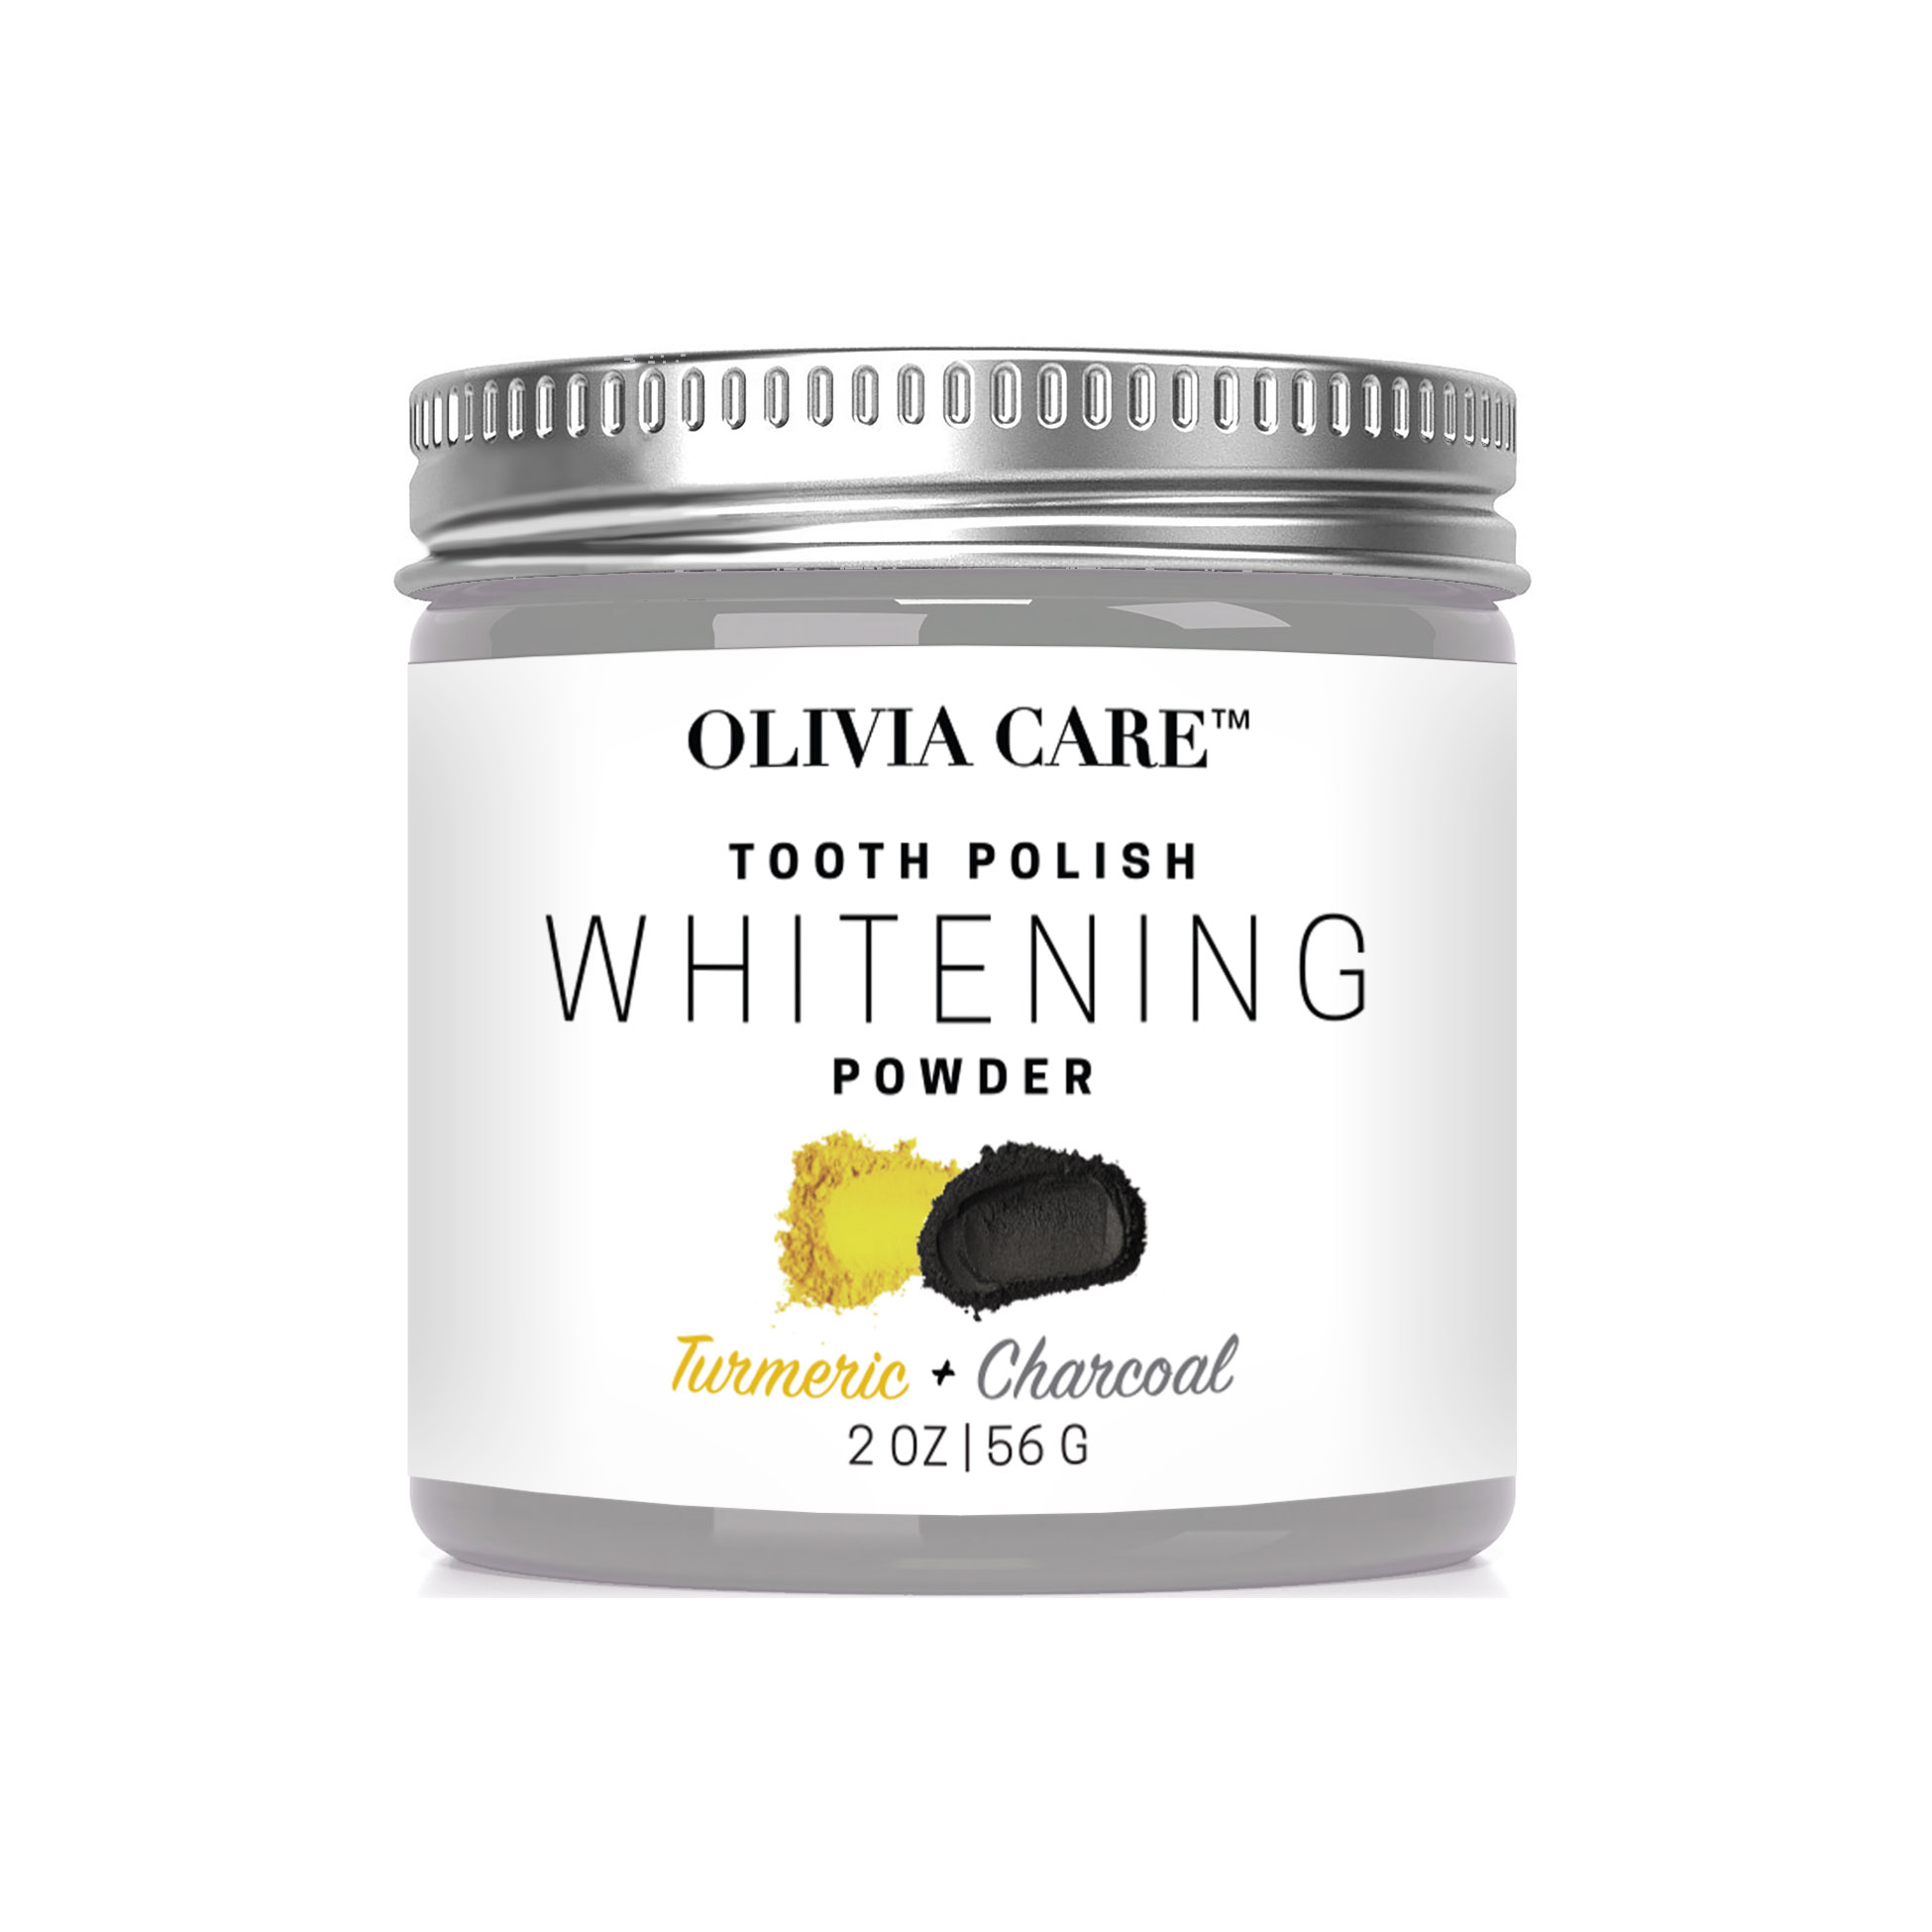 Turmeric Charcoal Whitening Tooth Powder Oliviacare